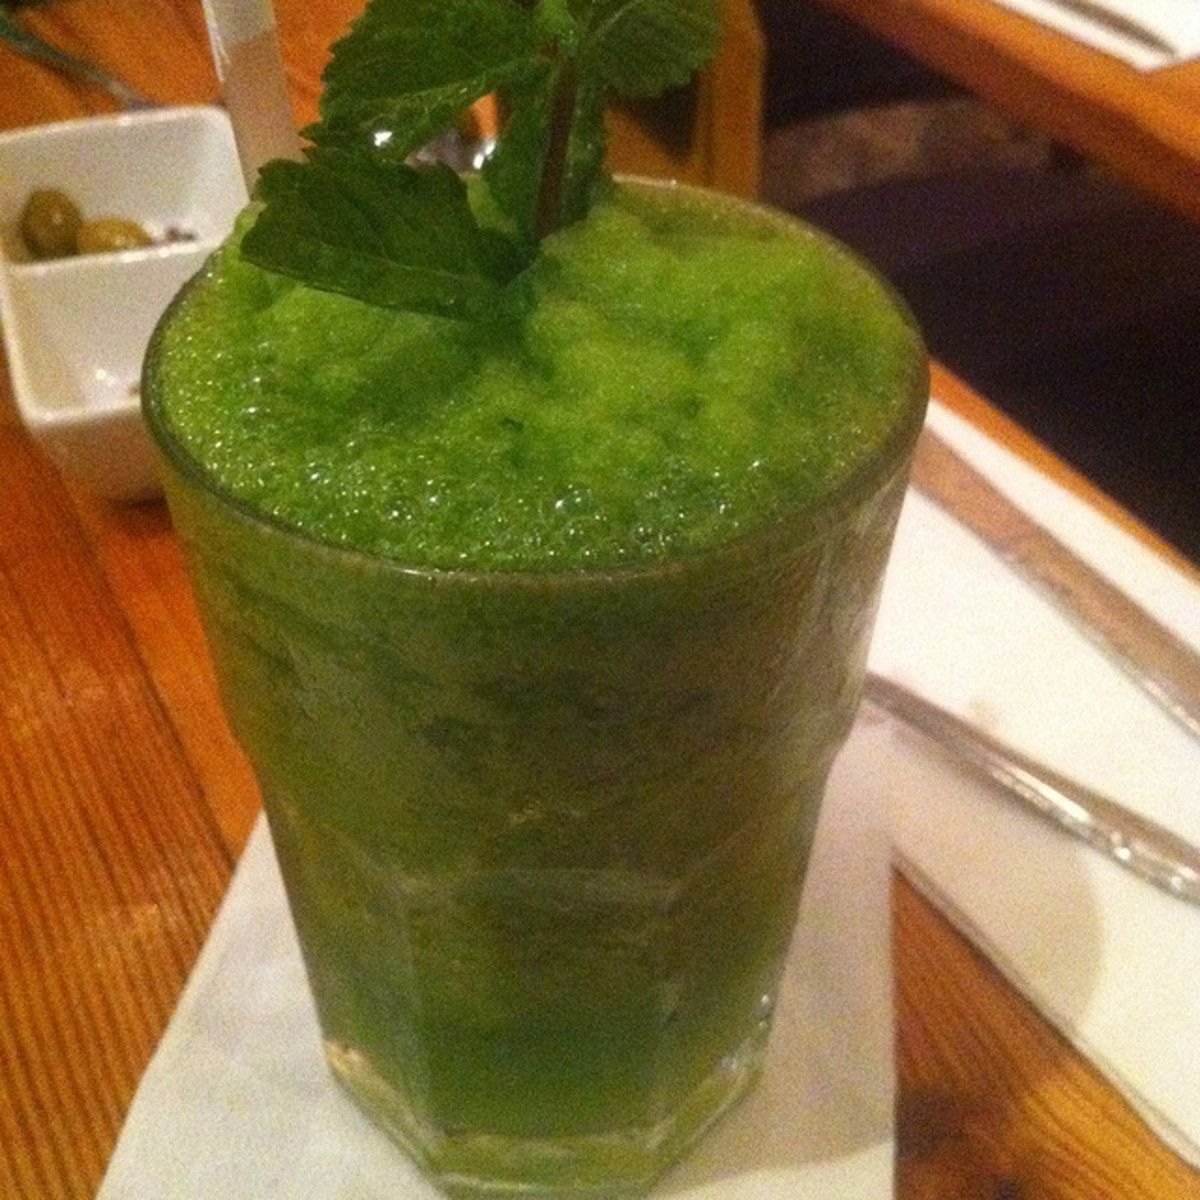 This green lemonade gets its color from mint, but green food coloring can do the trick as well.